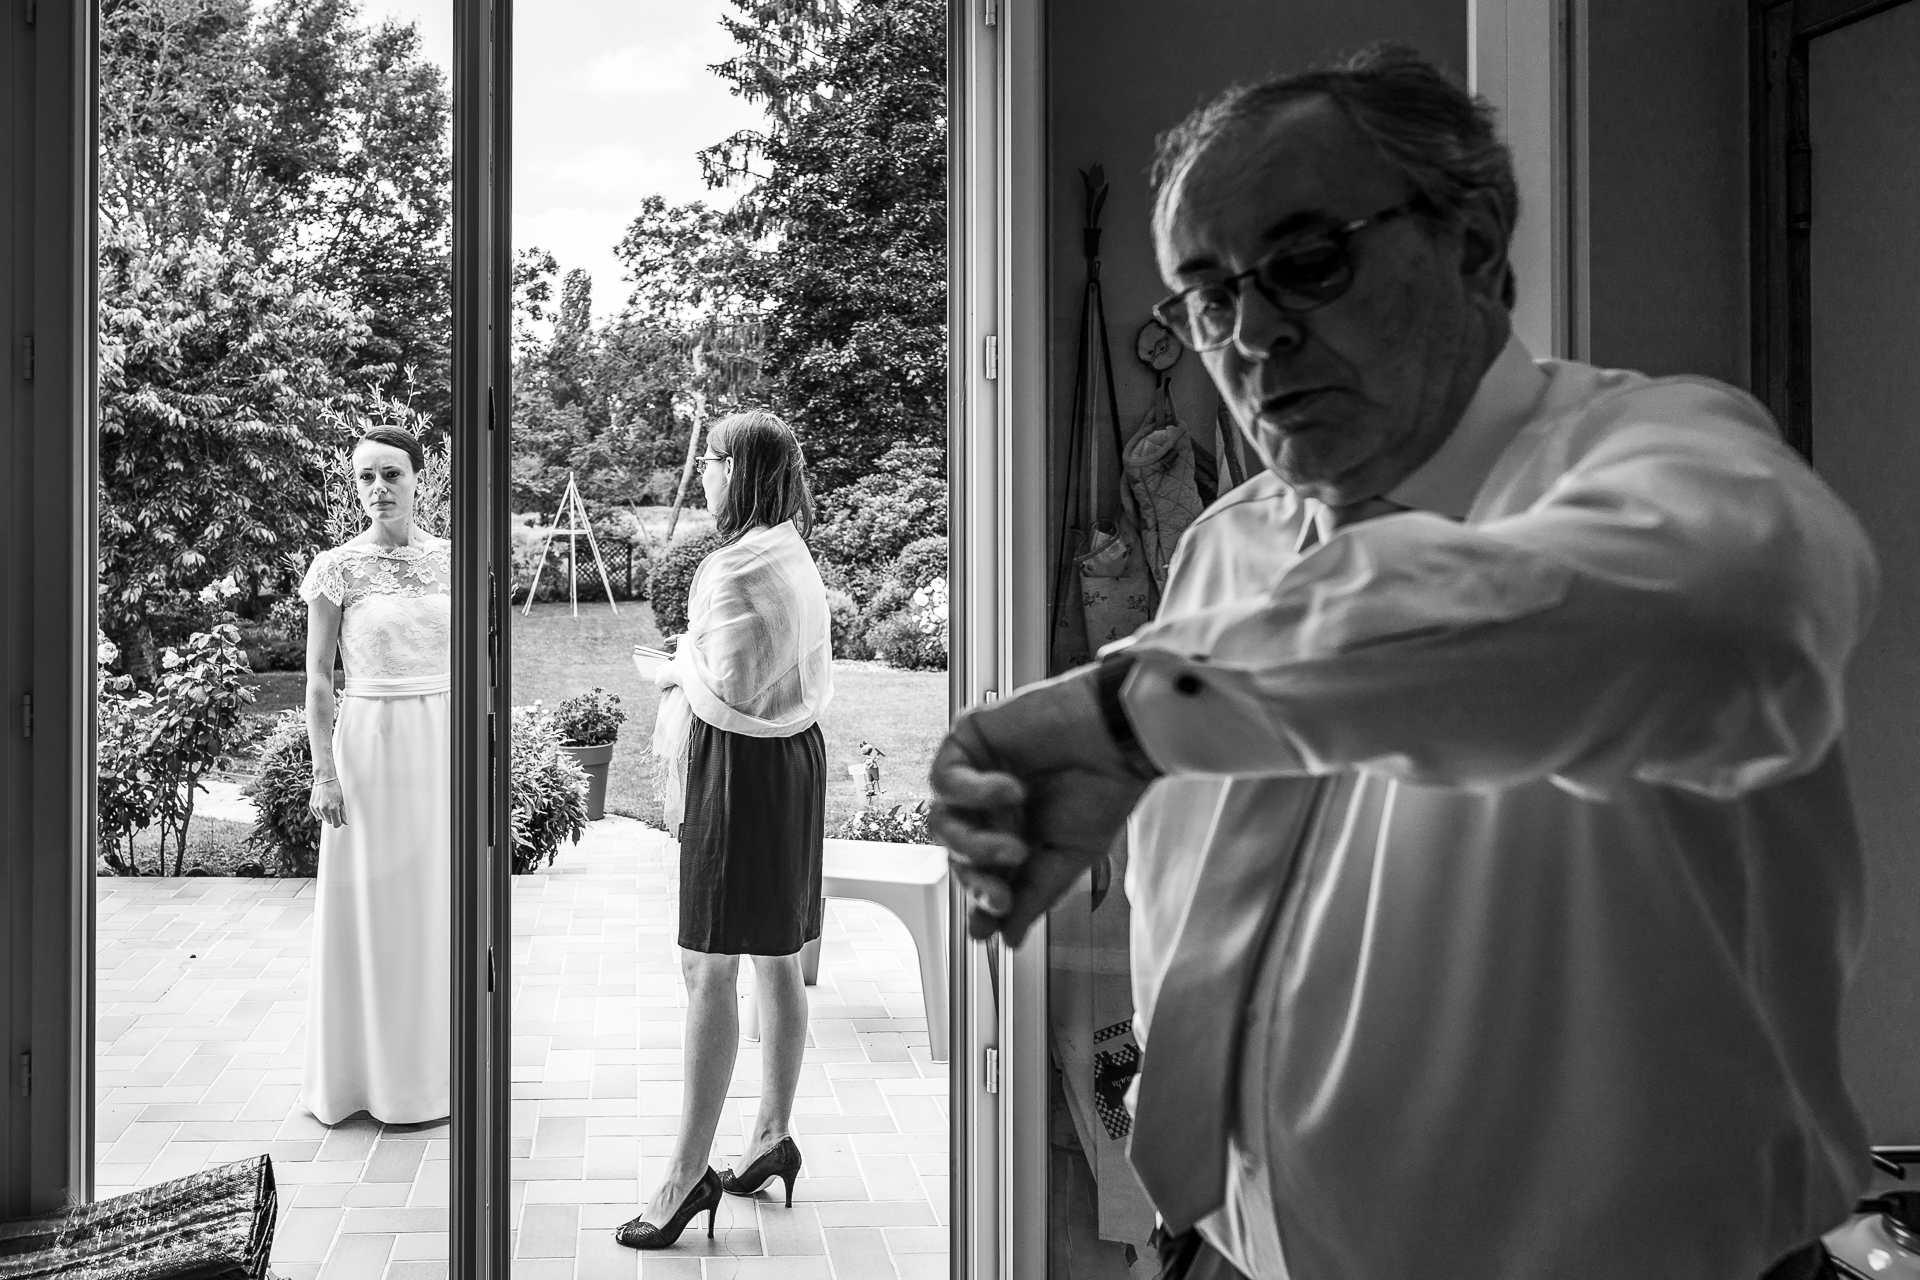 A man checks his watch before the ceremony in Checy in this black and white wedding photo